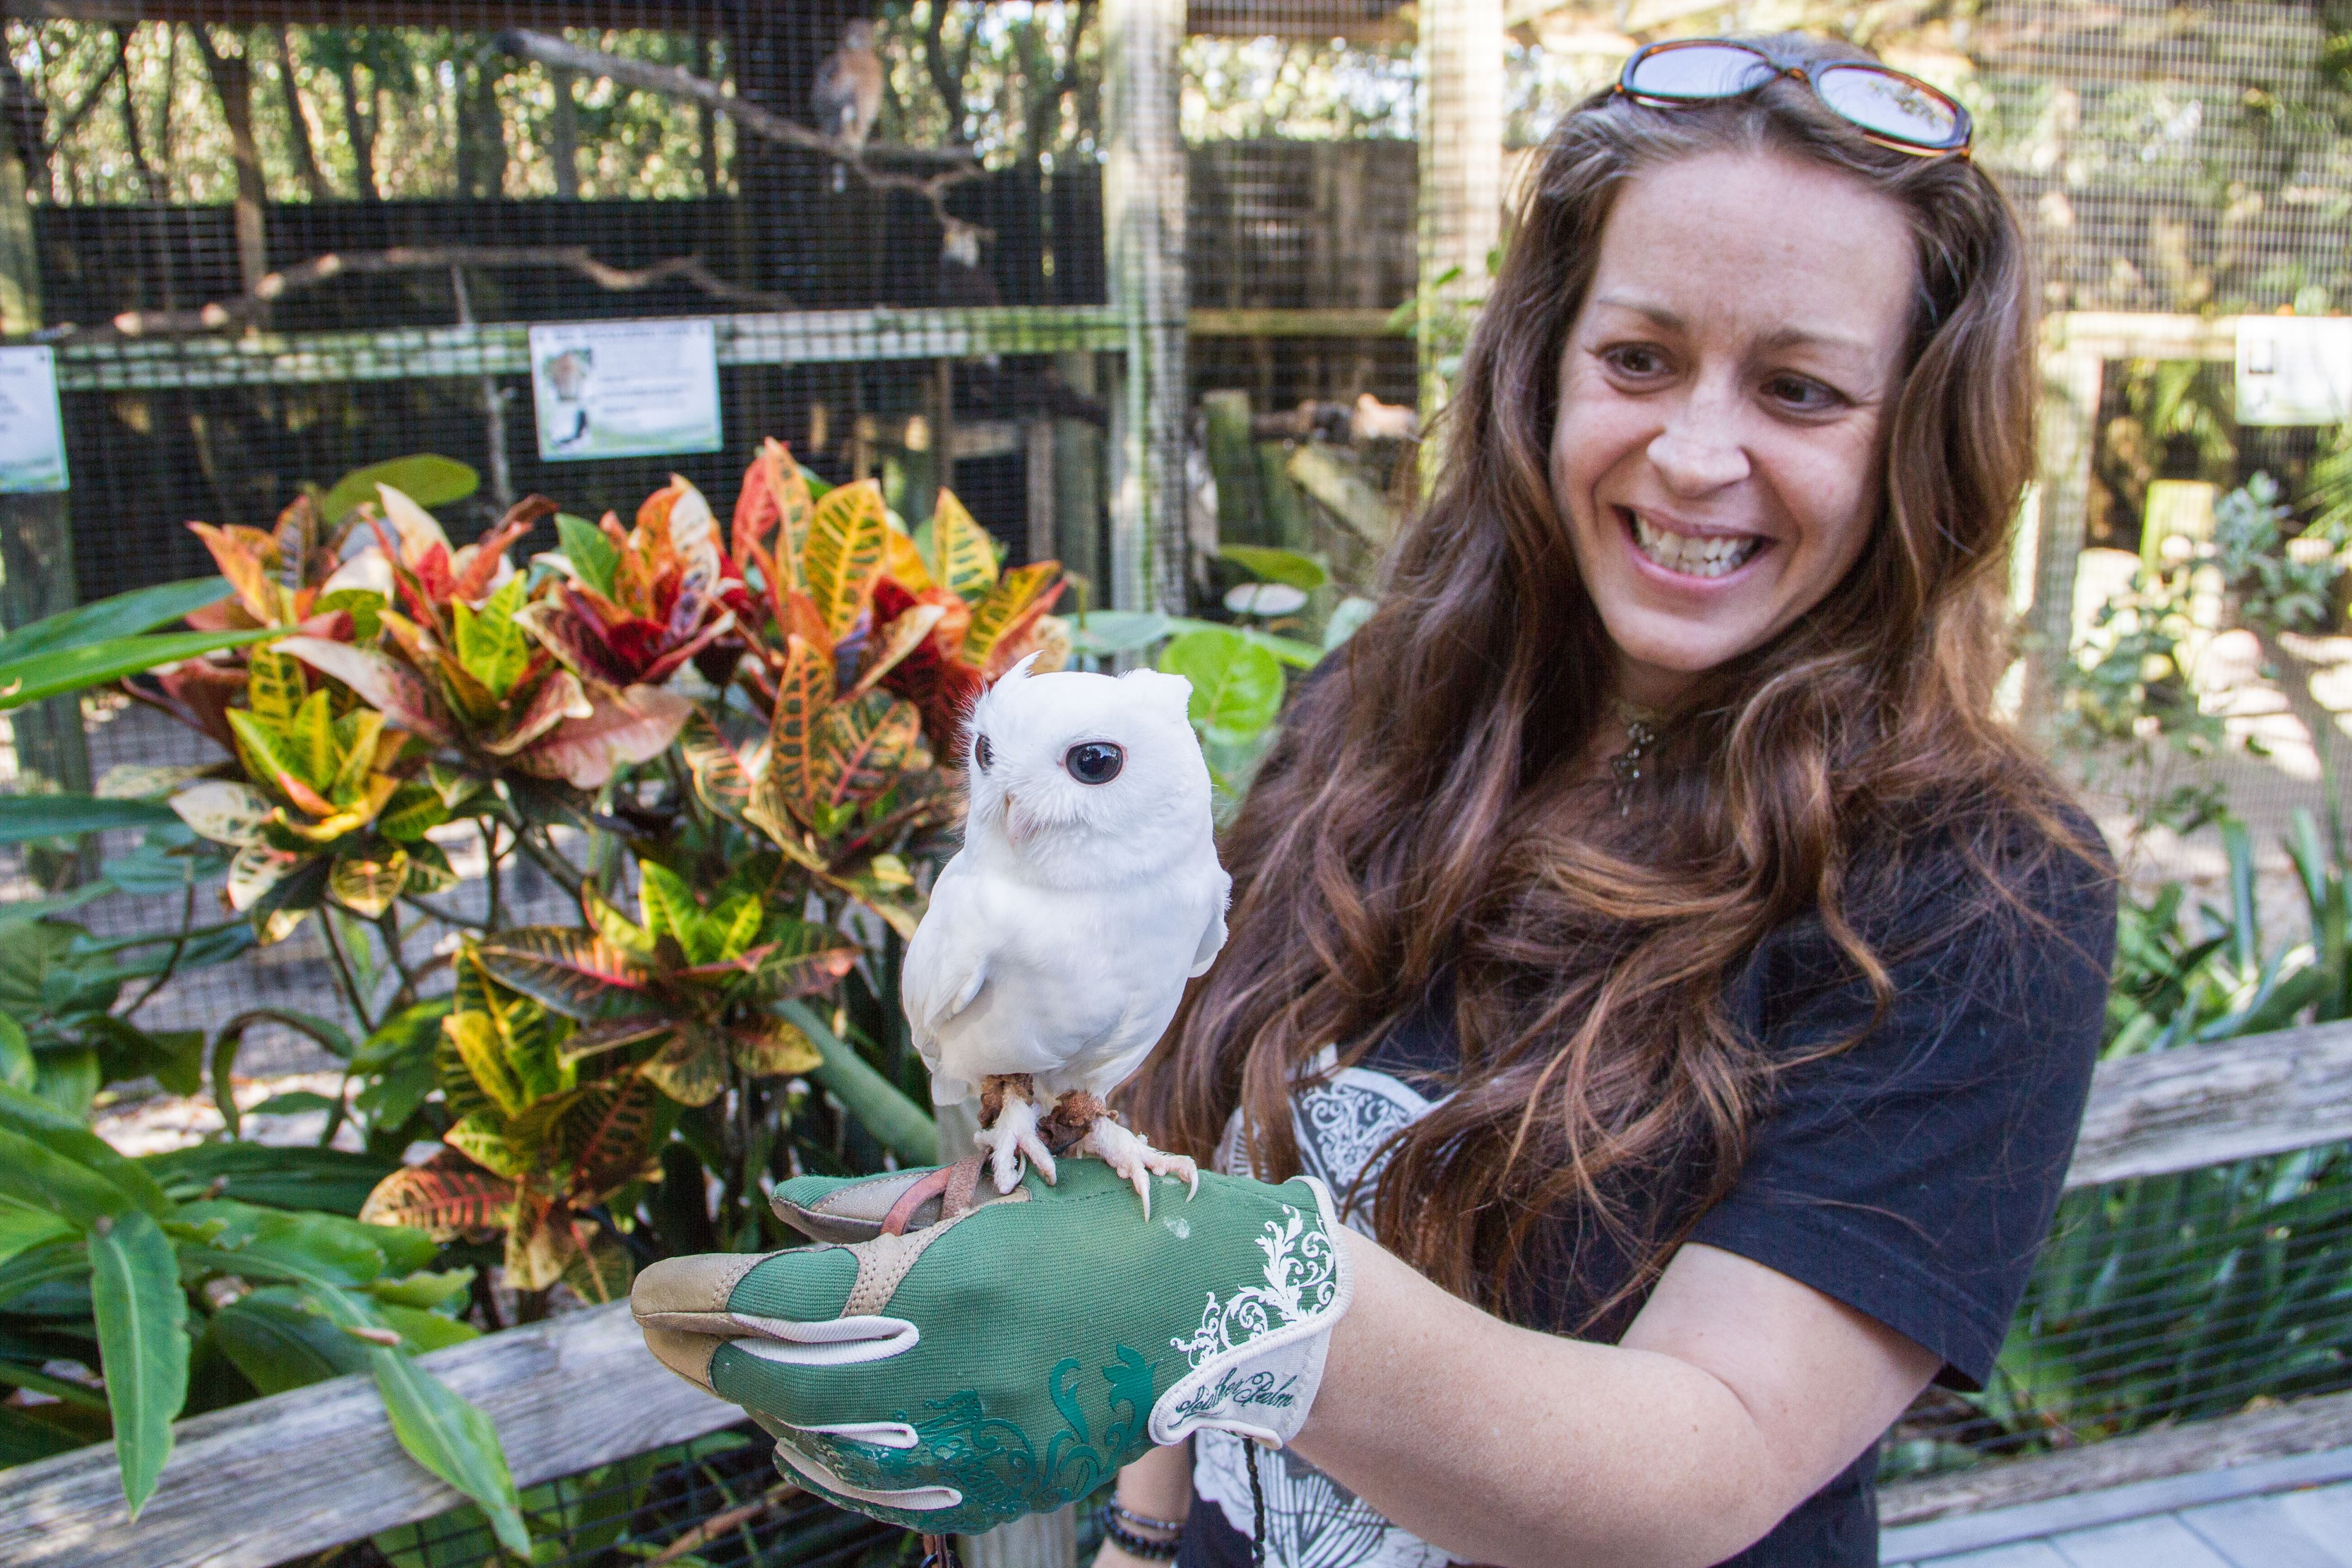 Slide 9 of 23: *** EXCLUSIVE ***  PUNTA GORDA, FL - FEBRUARY 2015: Luna was glove trained by the staff at Peace River Wildlife Centre to educate the visitors, taken in Punta Gorda, Florida, February 2015  Forget the ugly duckling, meet Luna the albino owl. Little Luna lacks the mottled brown feathers and striking yellow eyes of a normal Eastern screech owl. Instead, this special owl is dazzling white in appearance, with pink feet and eyes. Different from the beginning, Luna was found on the ground after hed fallen out of his nest as a young fledgling. Luckily he was brought to Peace River Wildlife Center, a non-profit organization dedicated to the care of orphaned and injured native Florida wildlife.   PHOTOGRAPH BY PRWC / Barcroft Images  London-T:+44 207 033 1031 E:hello@barcroftmedia.com - New York-T:+1 212 796 2458 E:hello@barcroftusa.com - New Delhi-T:+91 11 4053 2429 E:hello@barcroftindia.com www.barcroftimages.com (Photo credit should read PRWC / Barcroft Images / Barcroft Media via Getty Images)